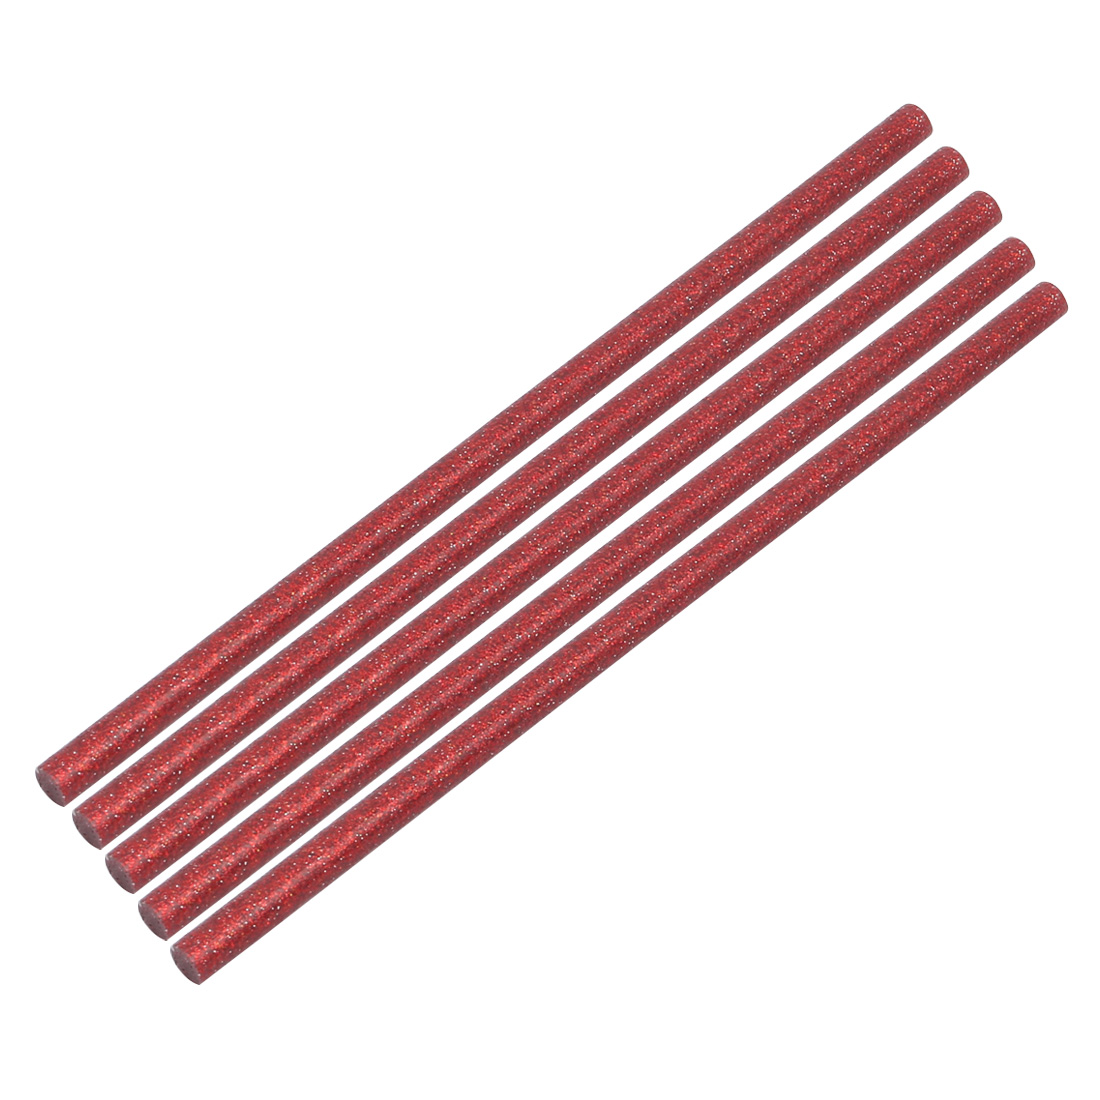 Unique Bargains 5pcs 7mm x 200mm Economy Hot Melt Glue Sticks Red for DIY Small Craft Projects